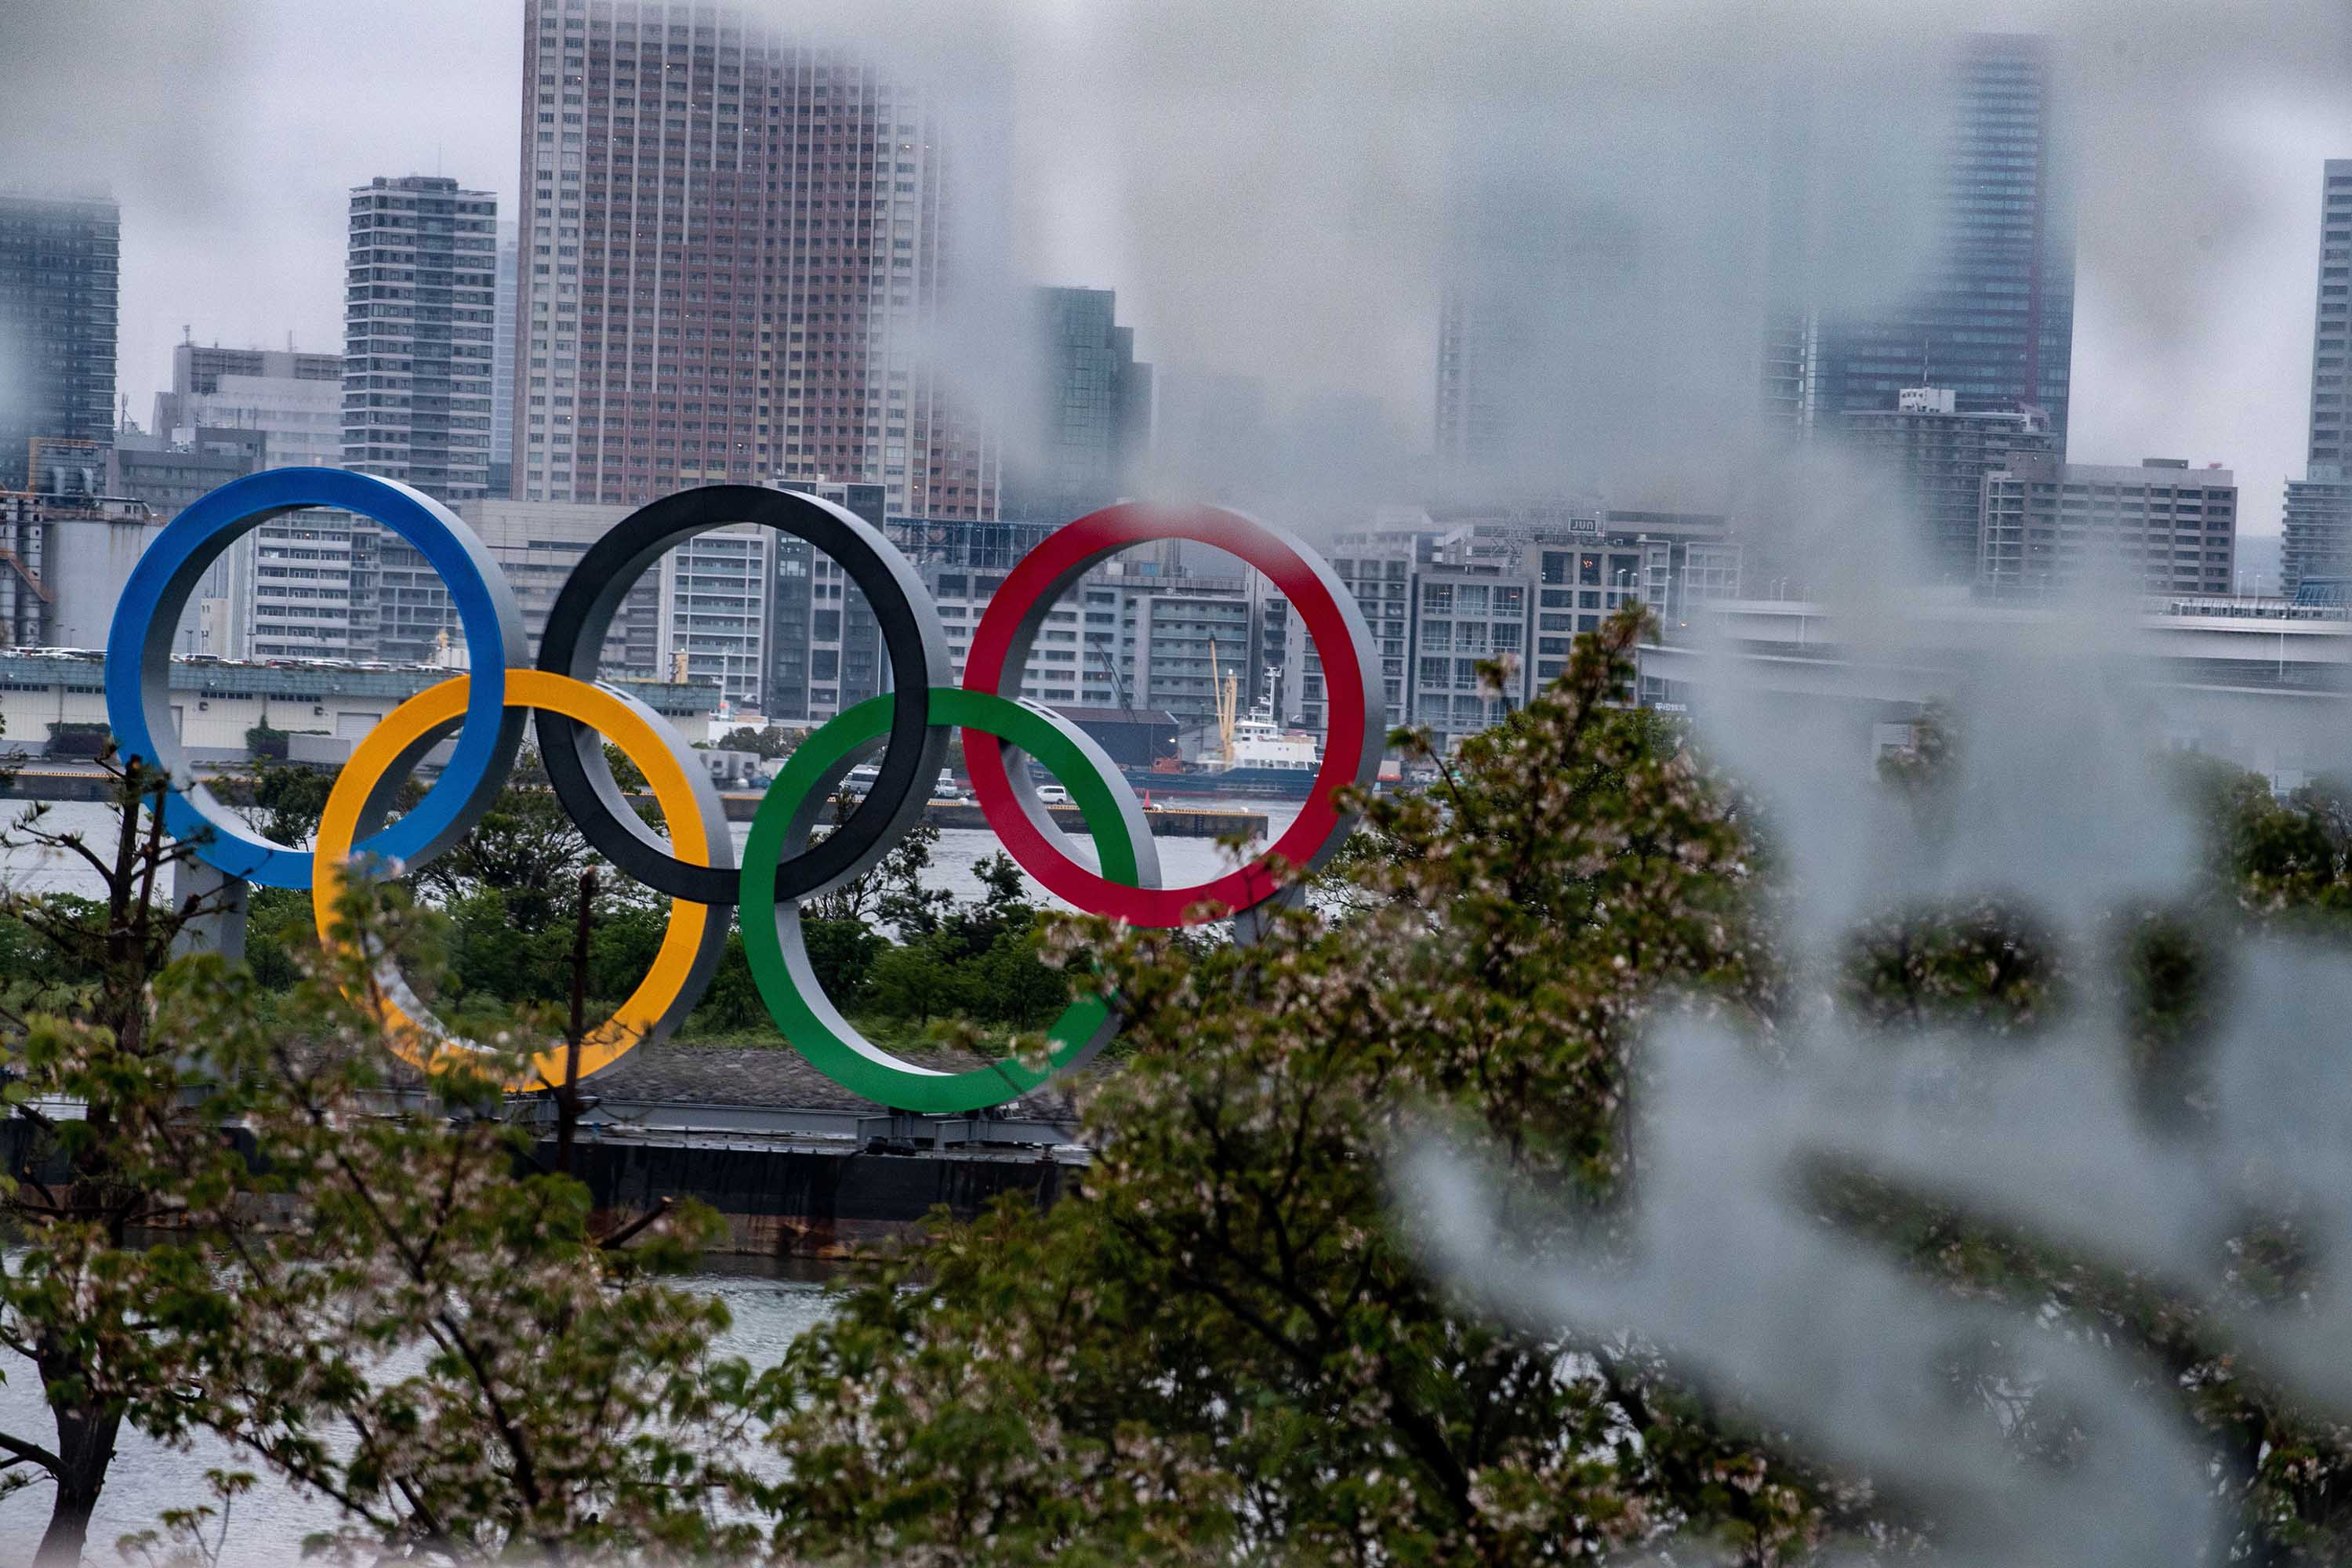 A general view shows the Olympic Rings at Odaiba waterfront in Tokyo on April 20.